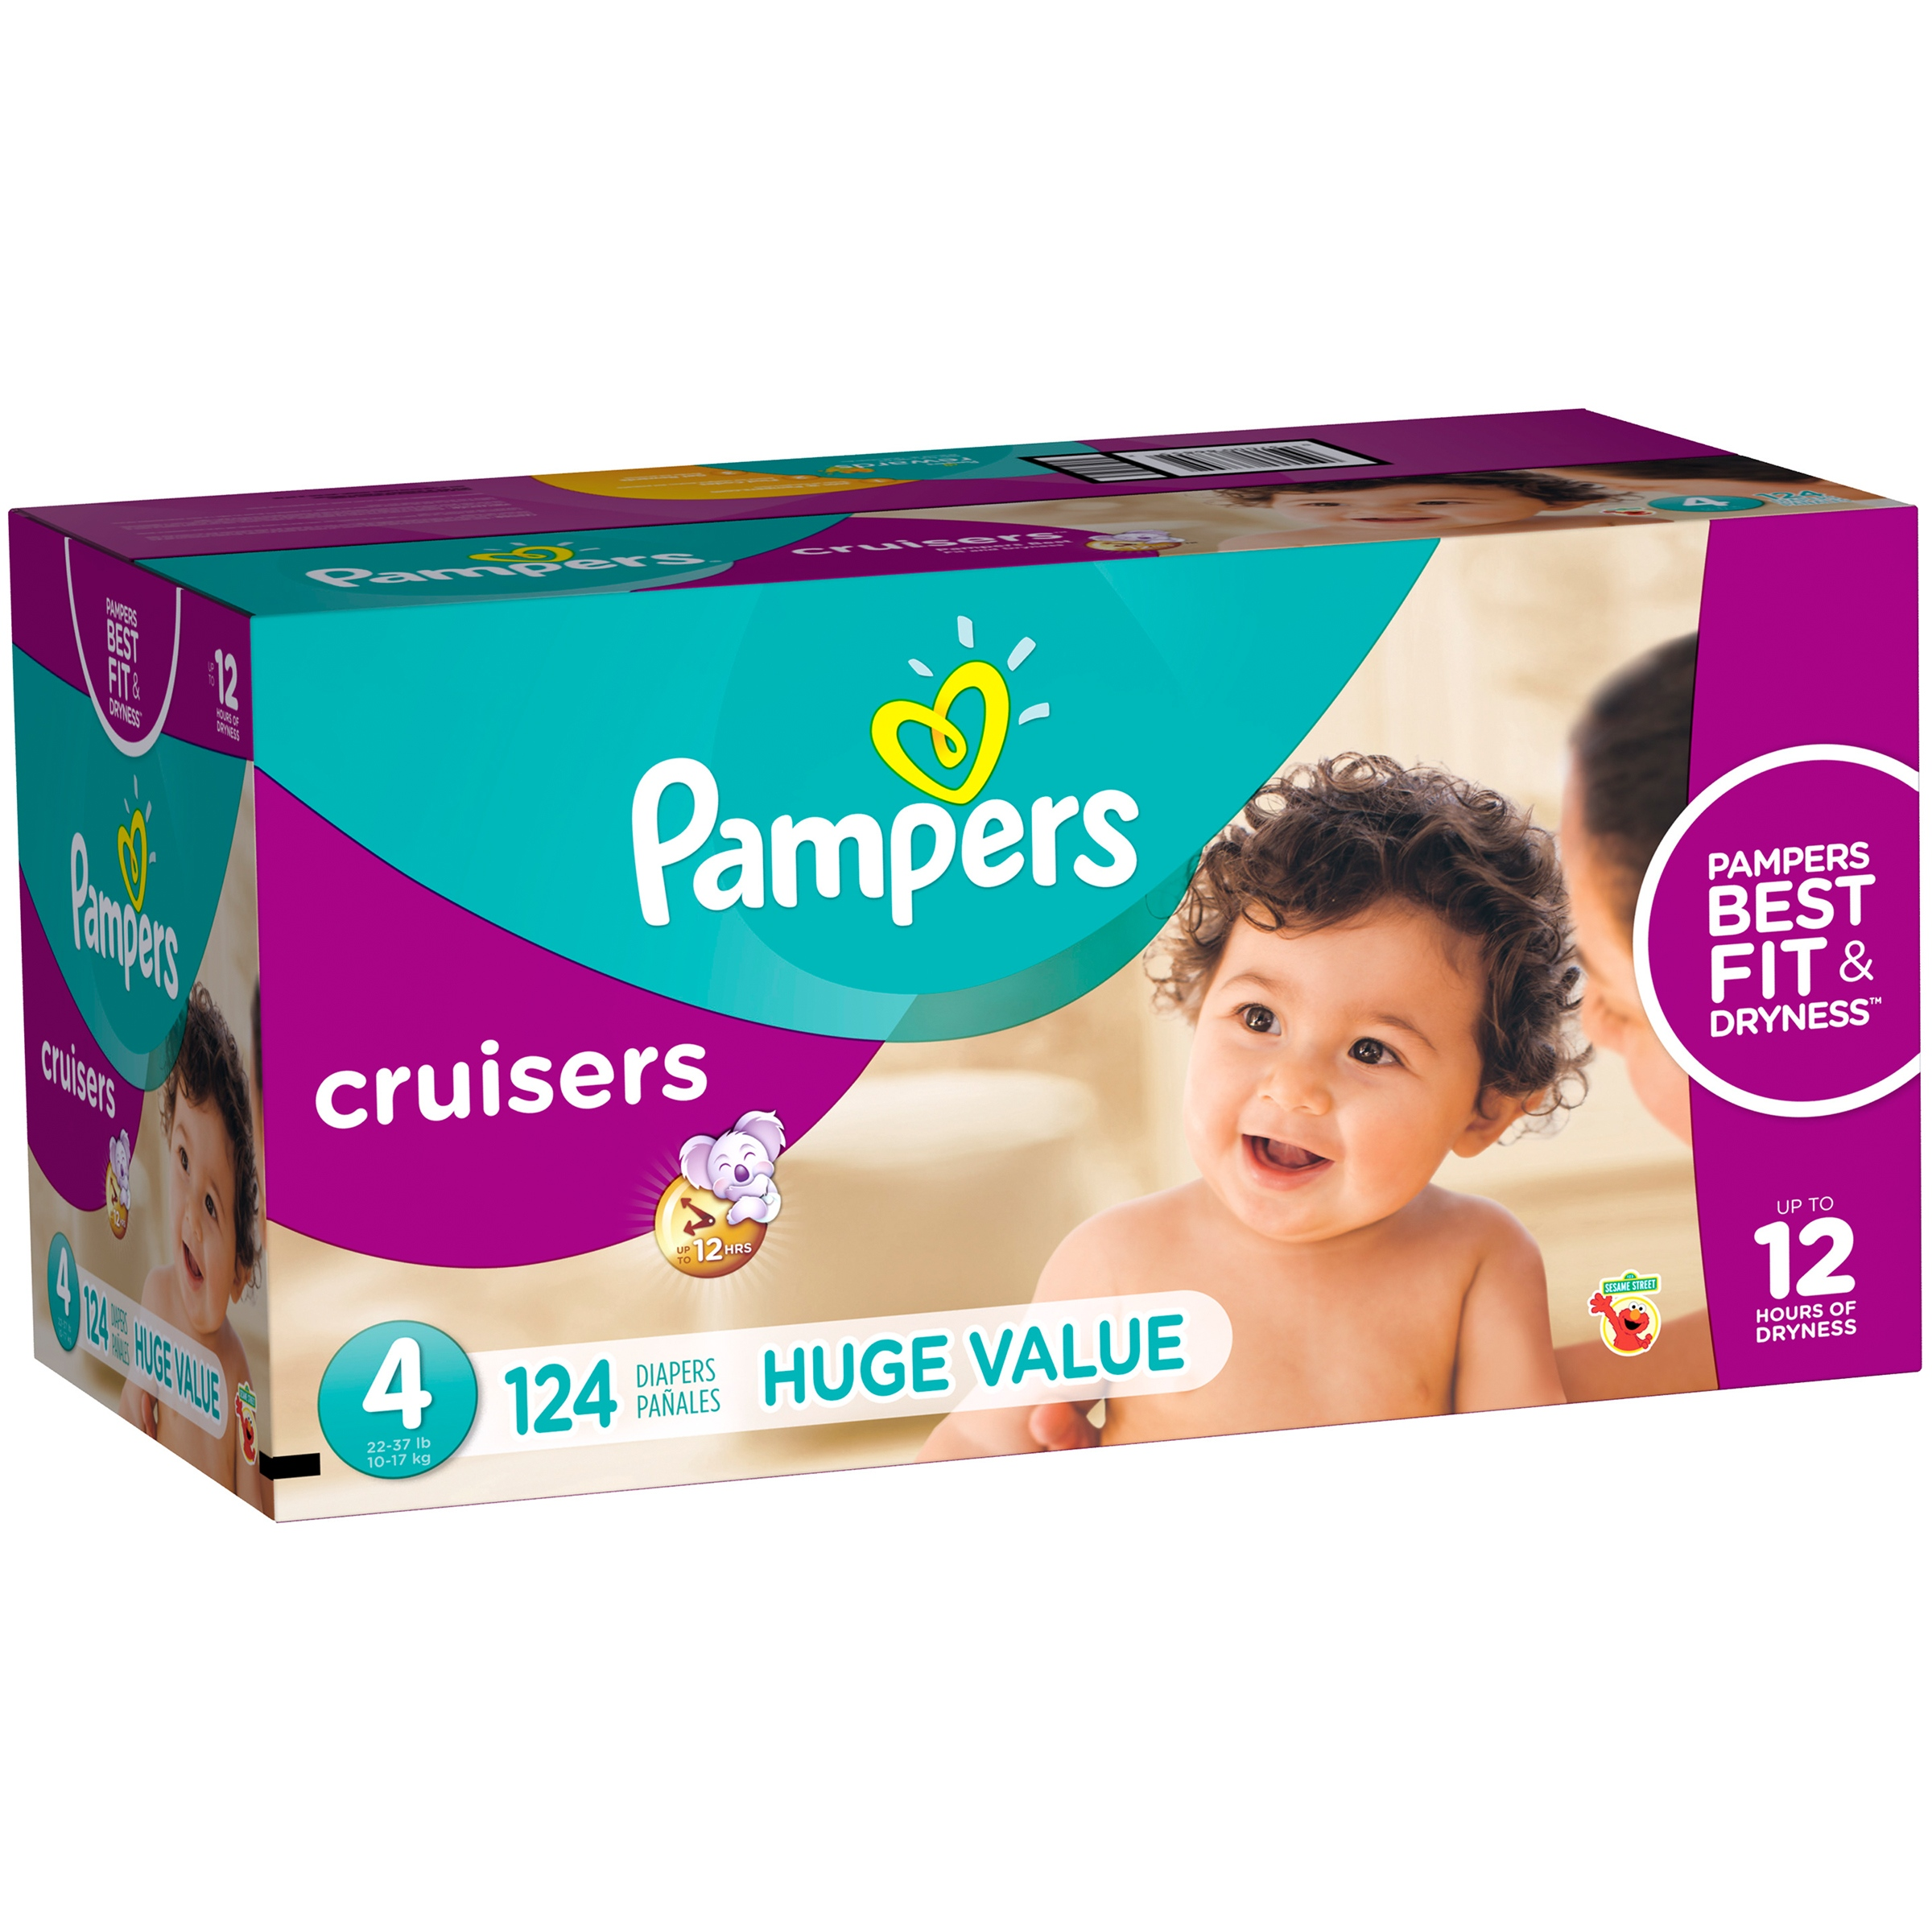 Diapers Size 4 Pampers - results from brands Pampers, Procter & Gamble, Tide, products like Pampers Swaddlers Overnights Diapers Size 4 62 Count, Pampers Swaddlers Diapers, Size 1 ( ct.), Procter & Gamble Pampers Cruisers Diapers, Size 4, Diapers, Diapers.